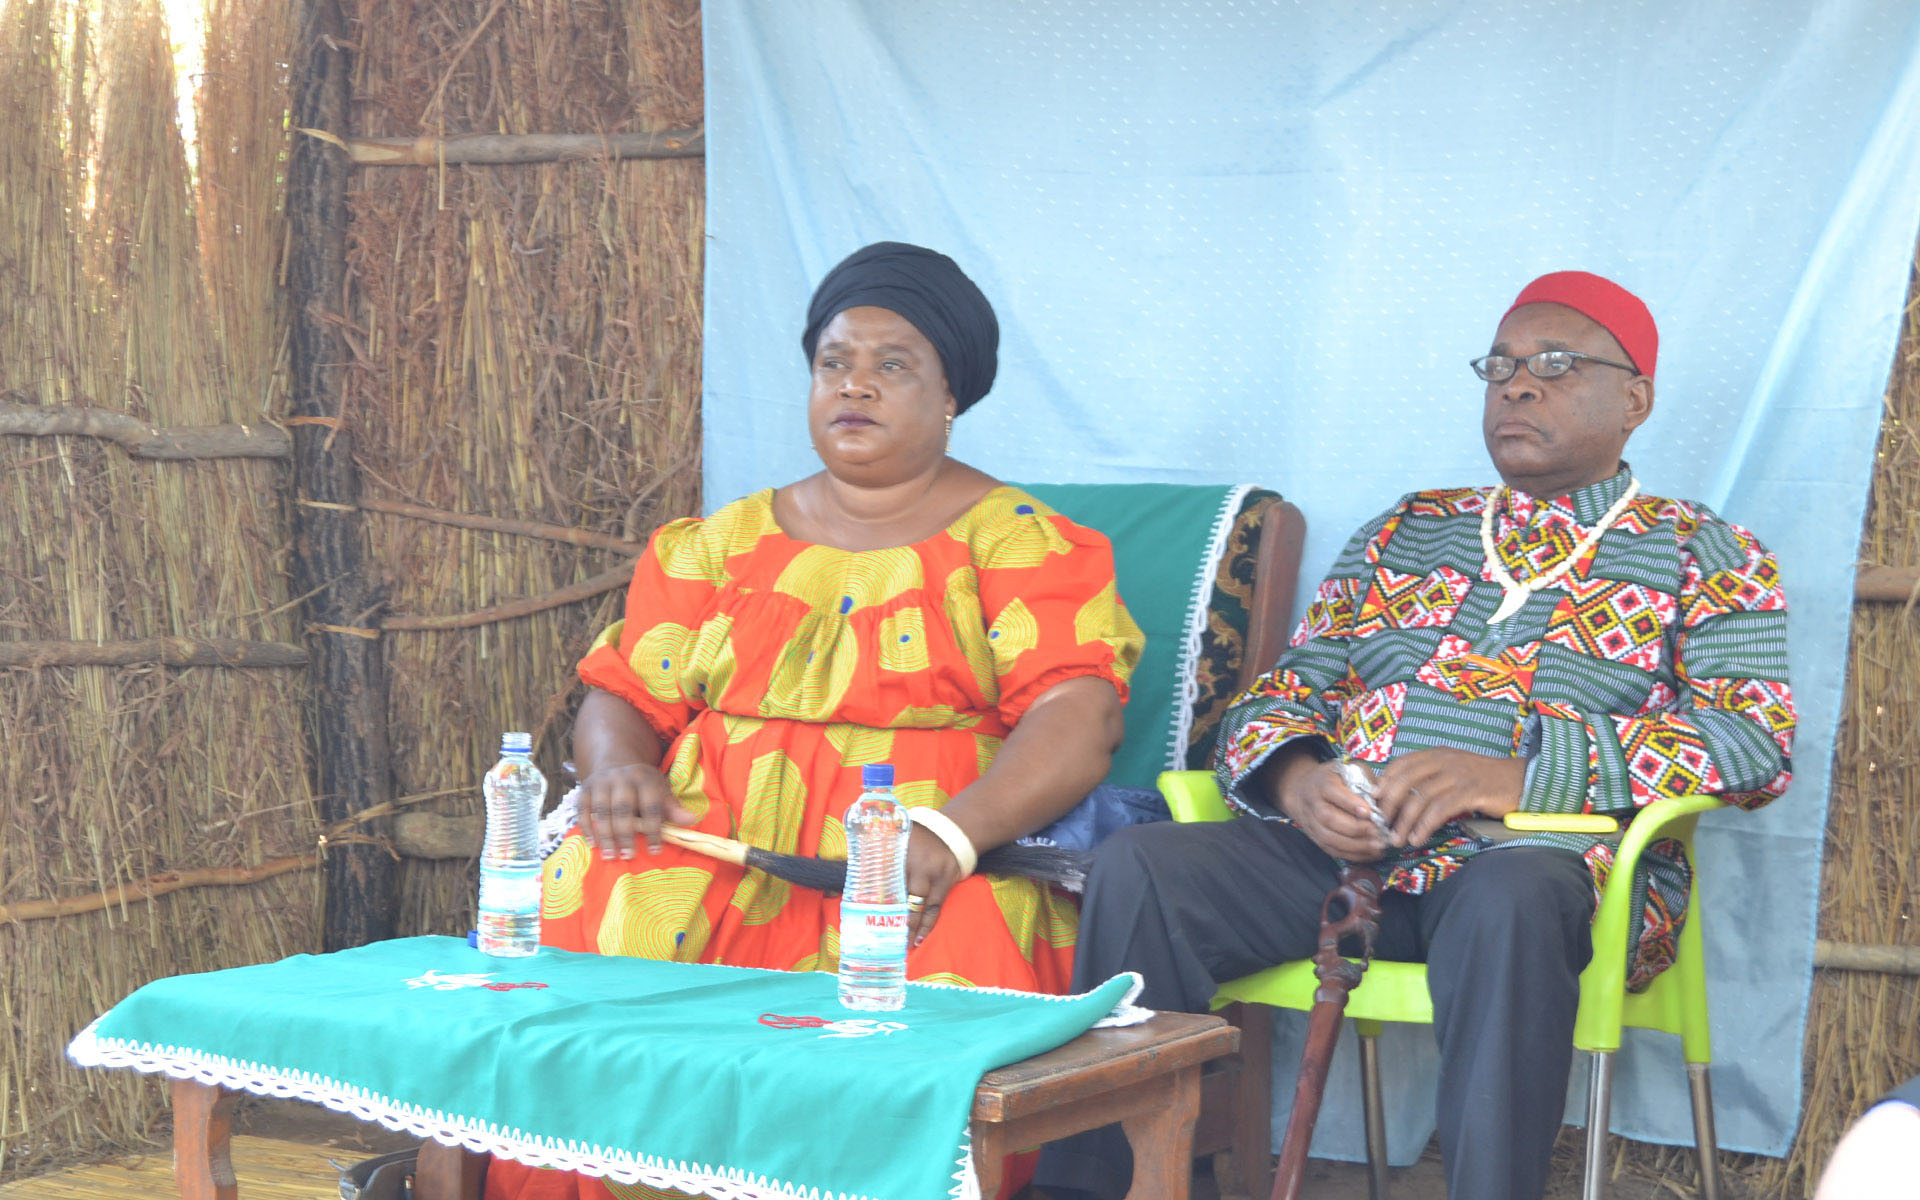 Chieftainess Malembeka, the traditional ruler and landowner, presides over a village meeting, accompanied by her husband.